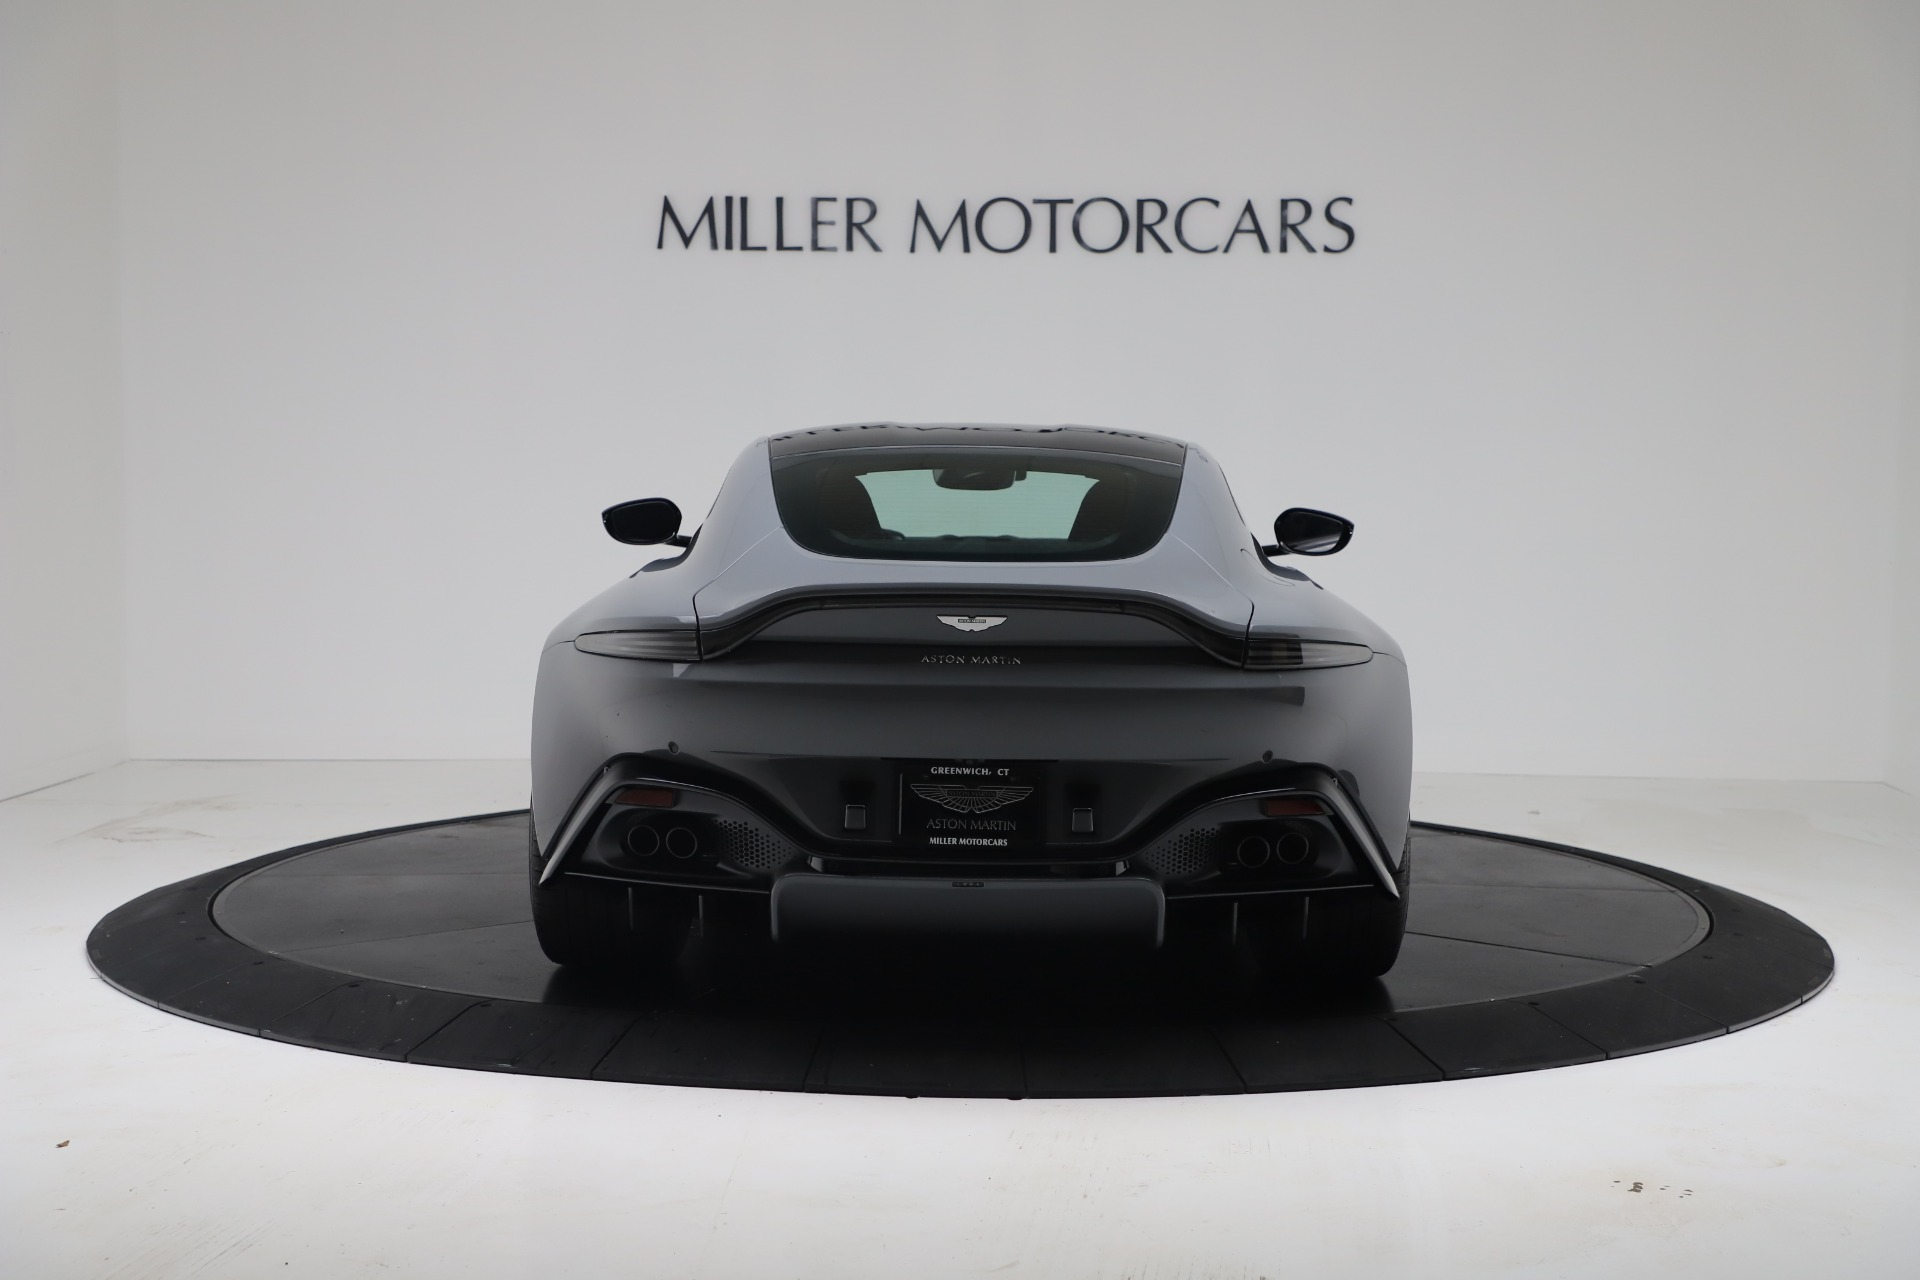 New 2020 Aston Martin Vantage V8 For Sale In Westport, CT 3482_p18